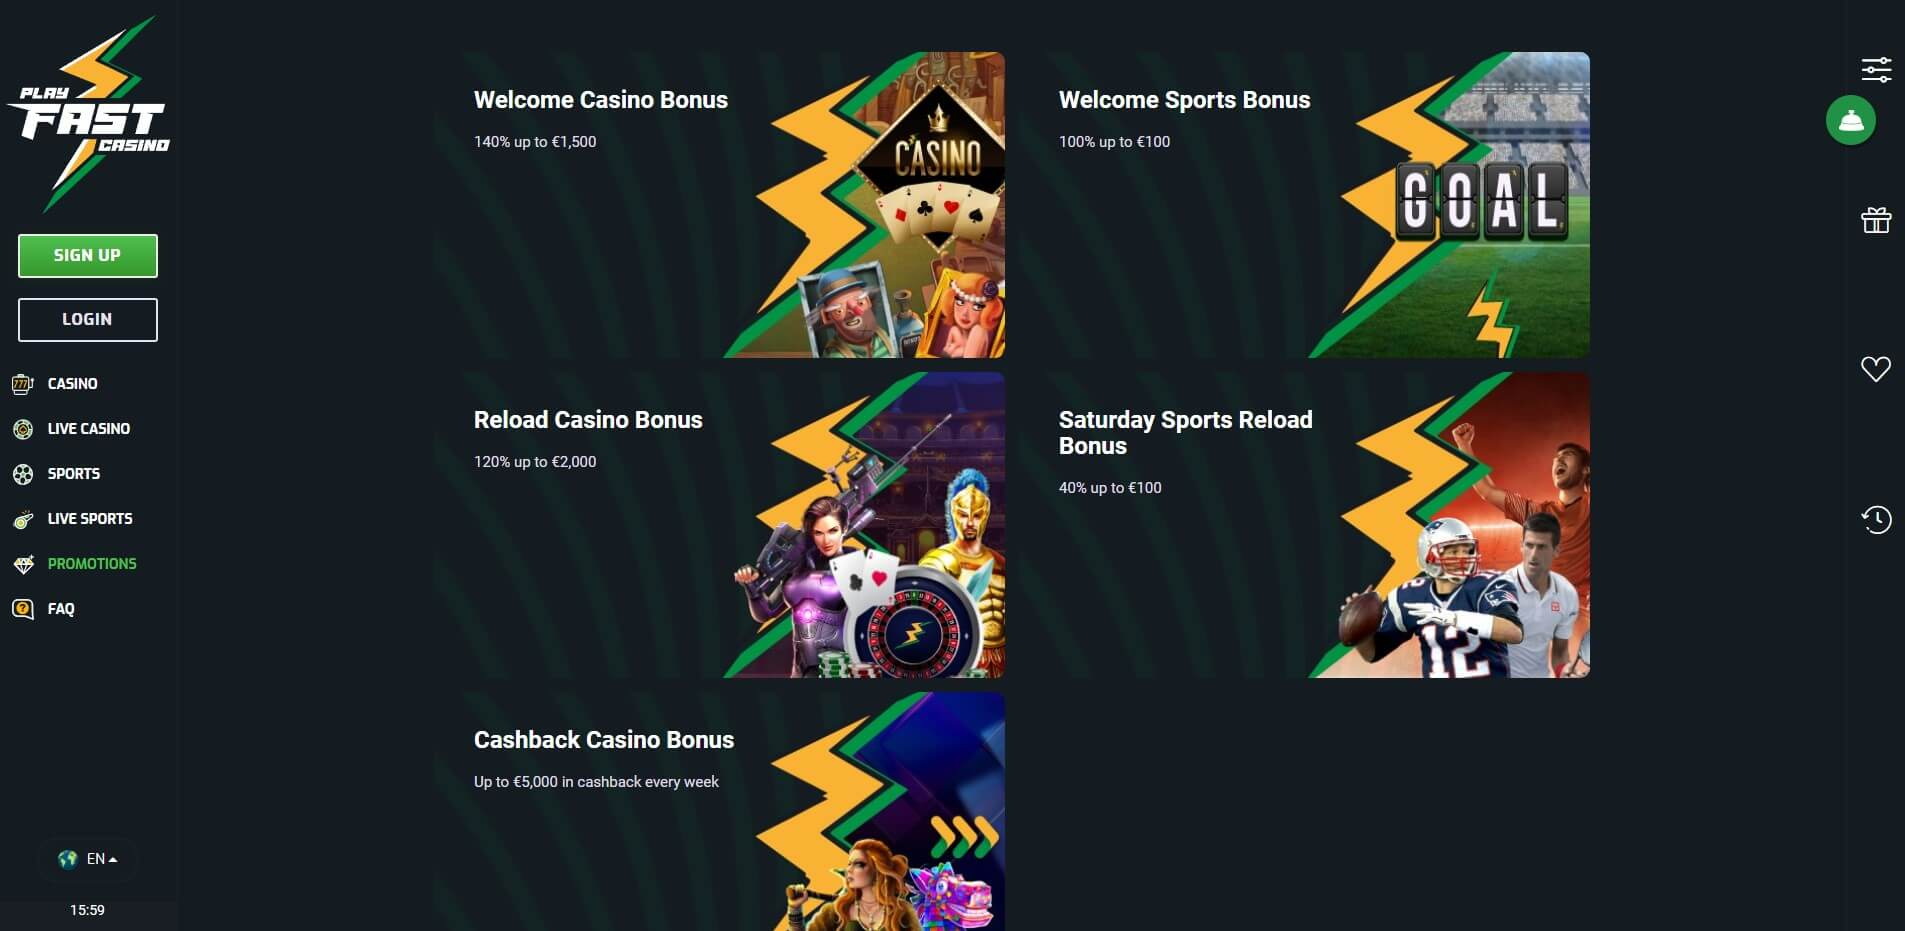 Promotions at Playfast Casino